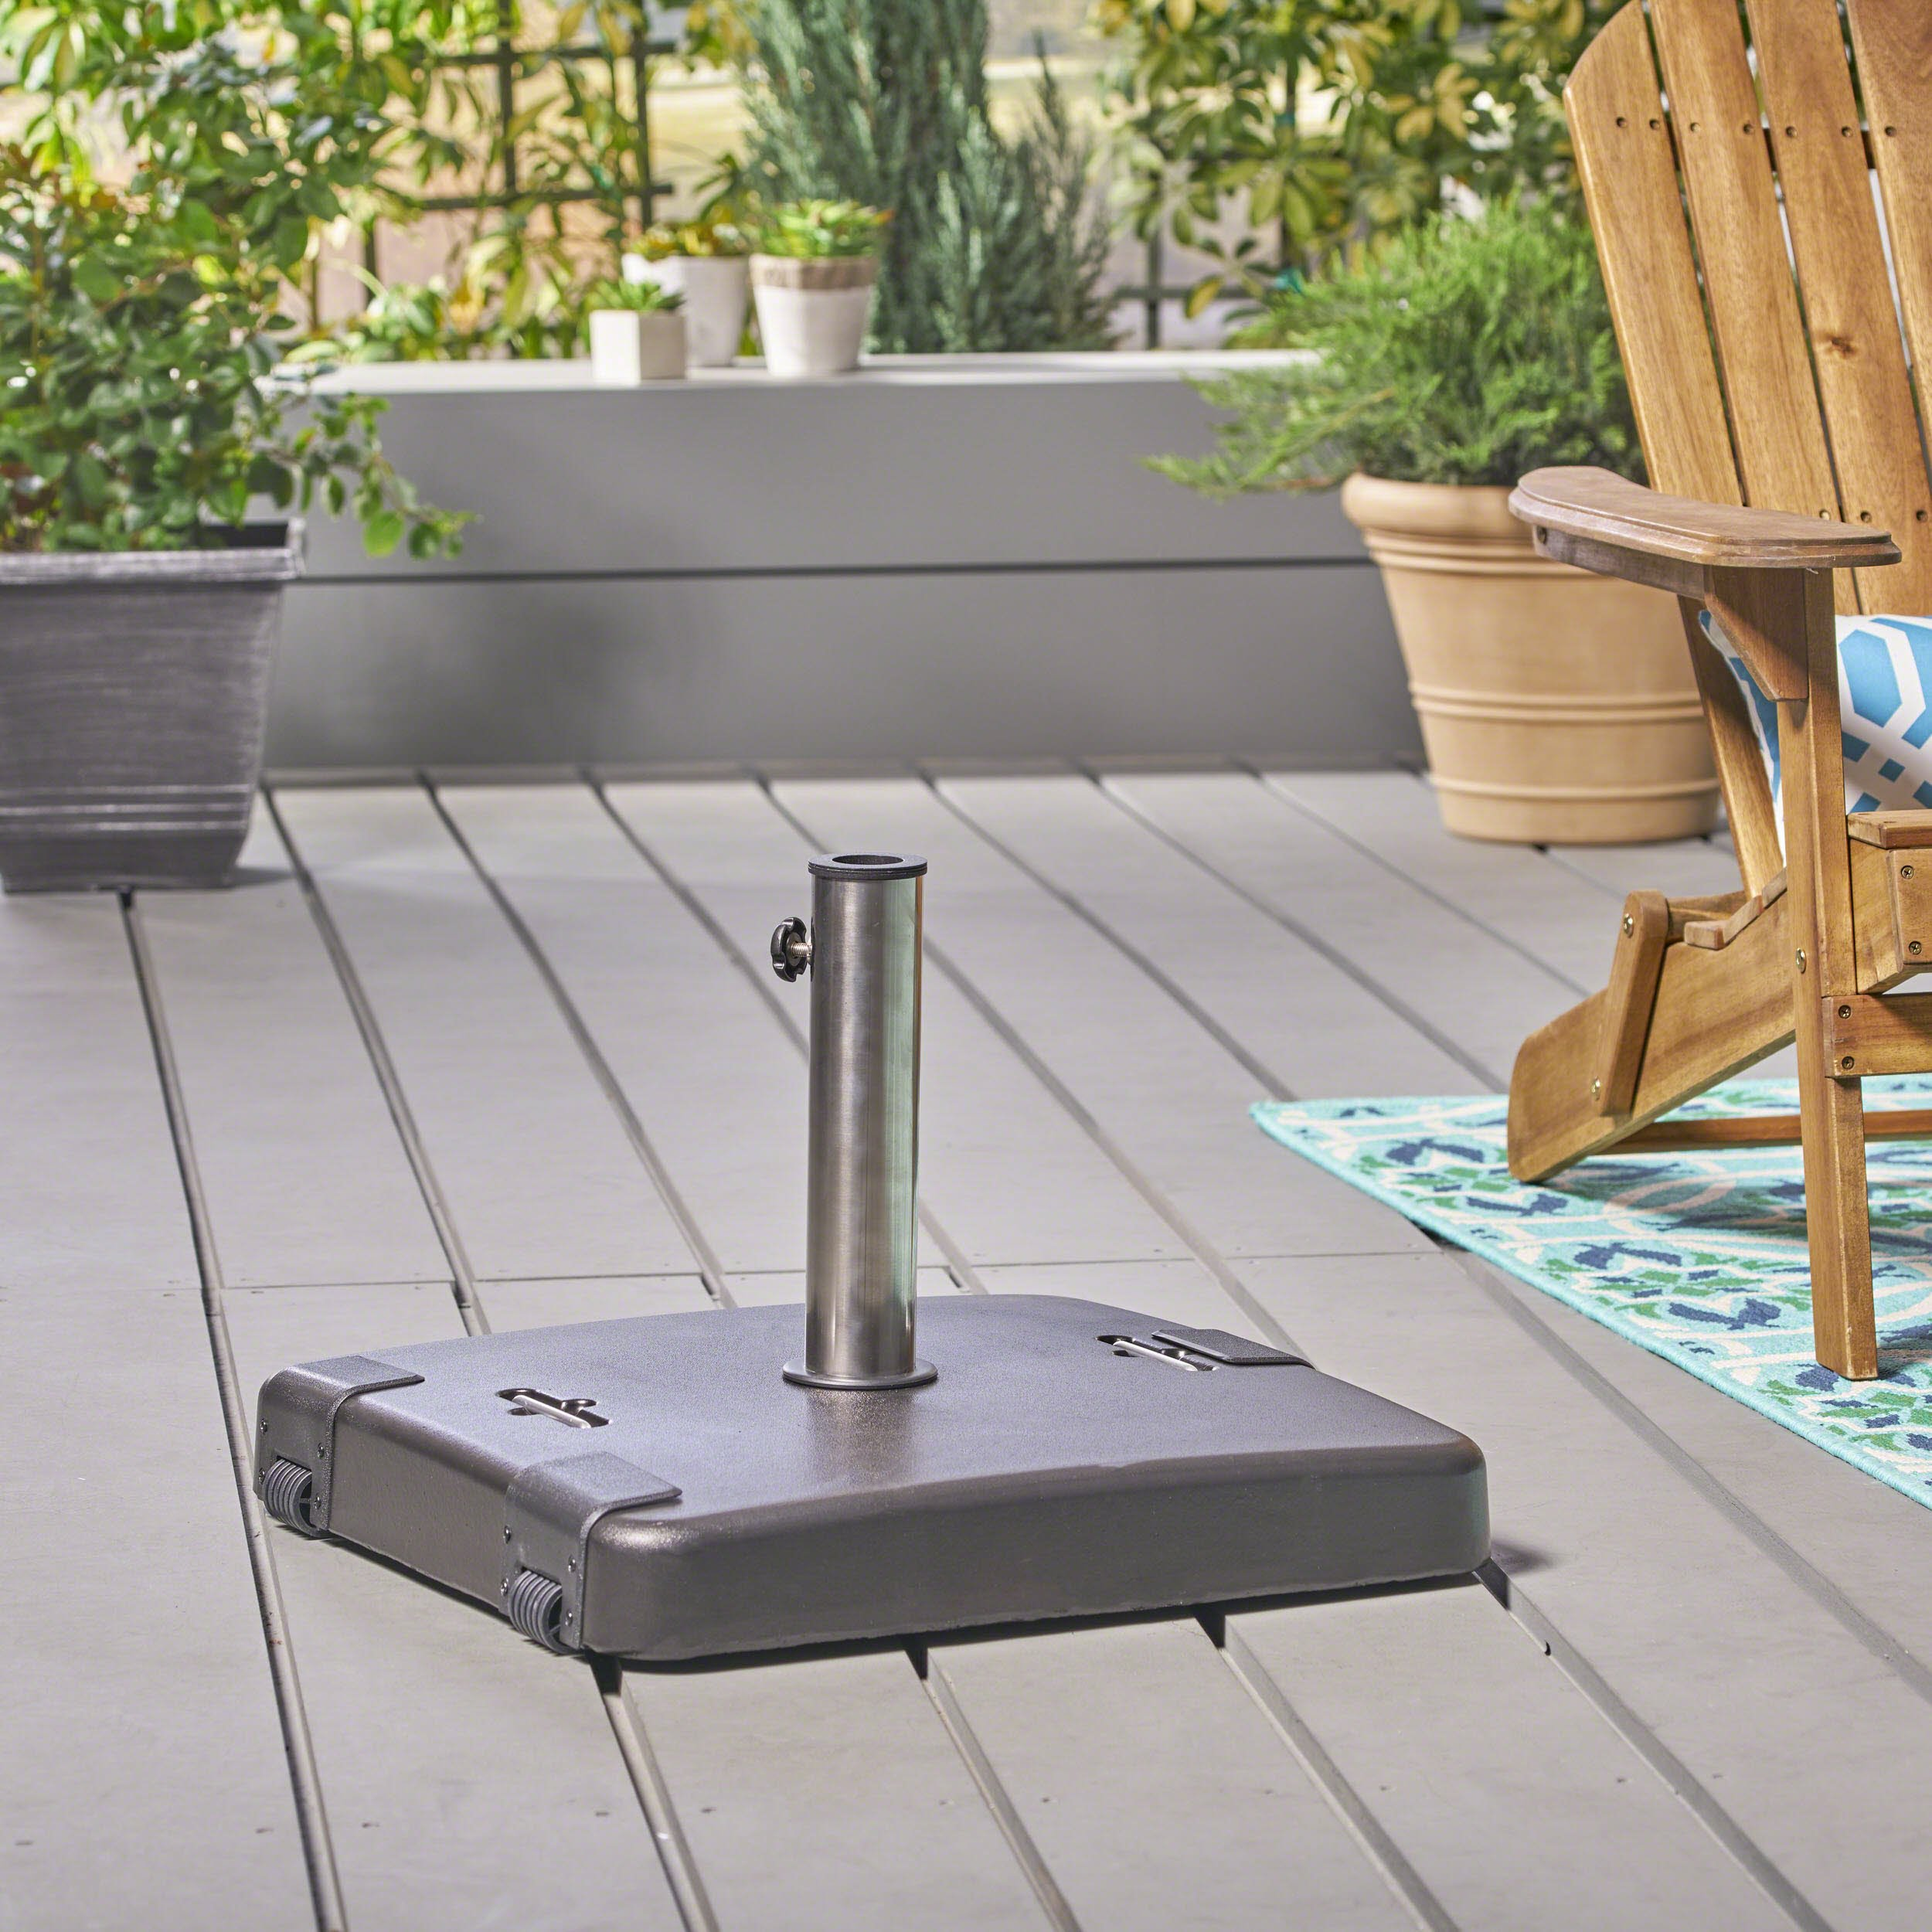 Great Deal Furniture Larissa Outdoor 119lb Concrete Square Umbrella Base with Stainless Steel Collar, Black